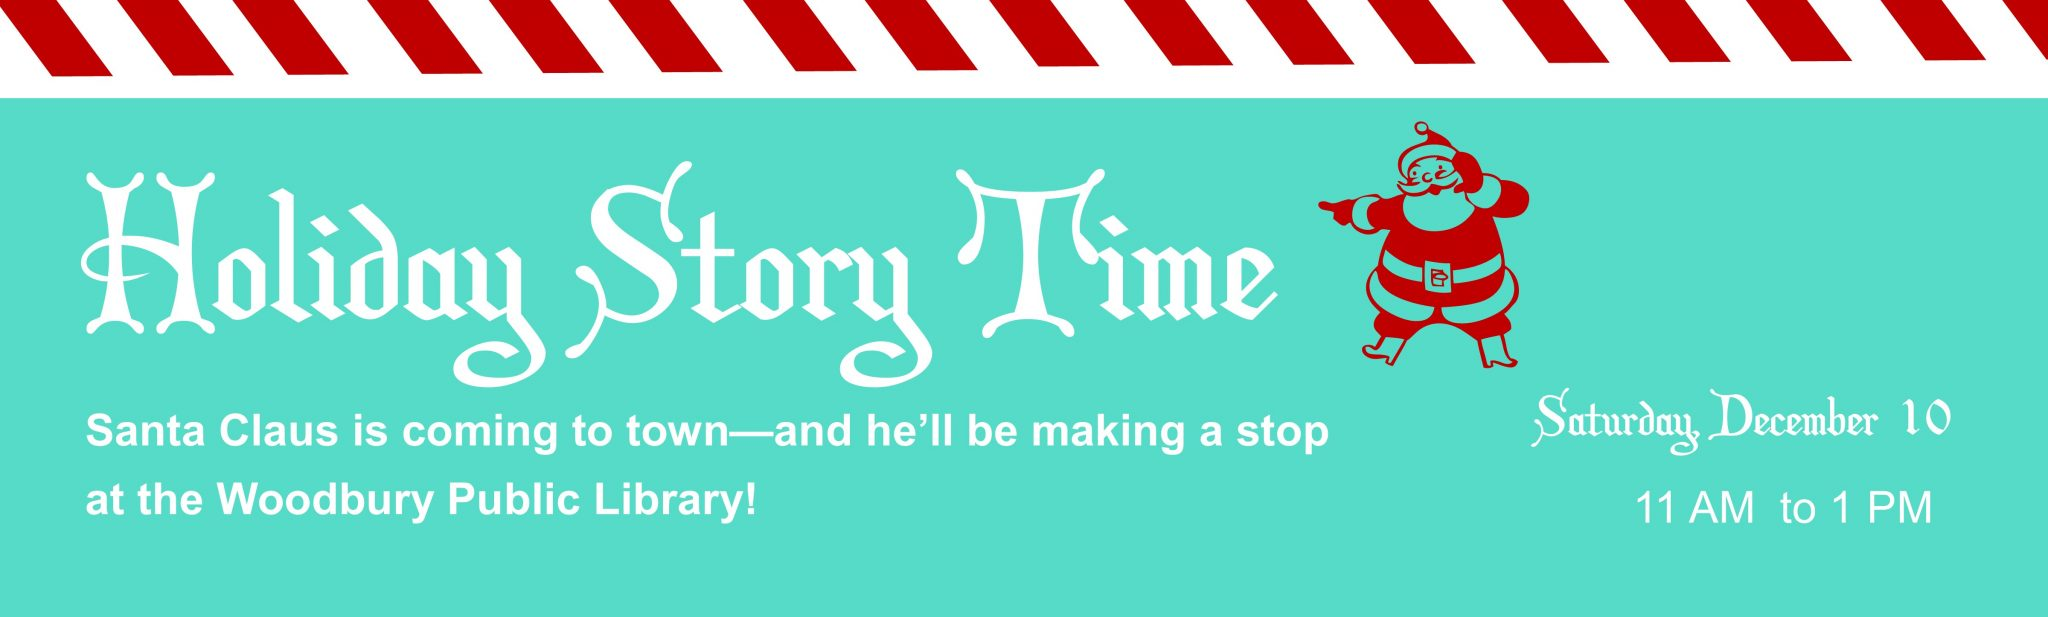 12-10-16 holiday story time